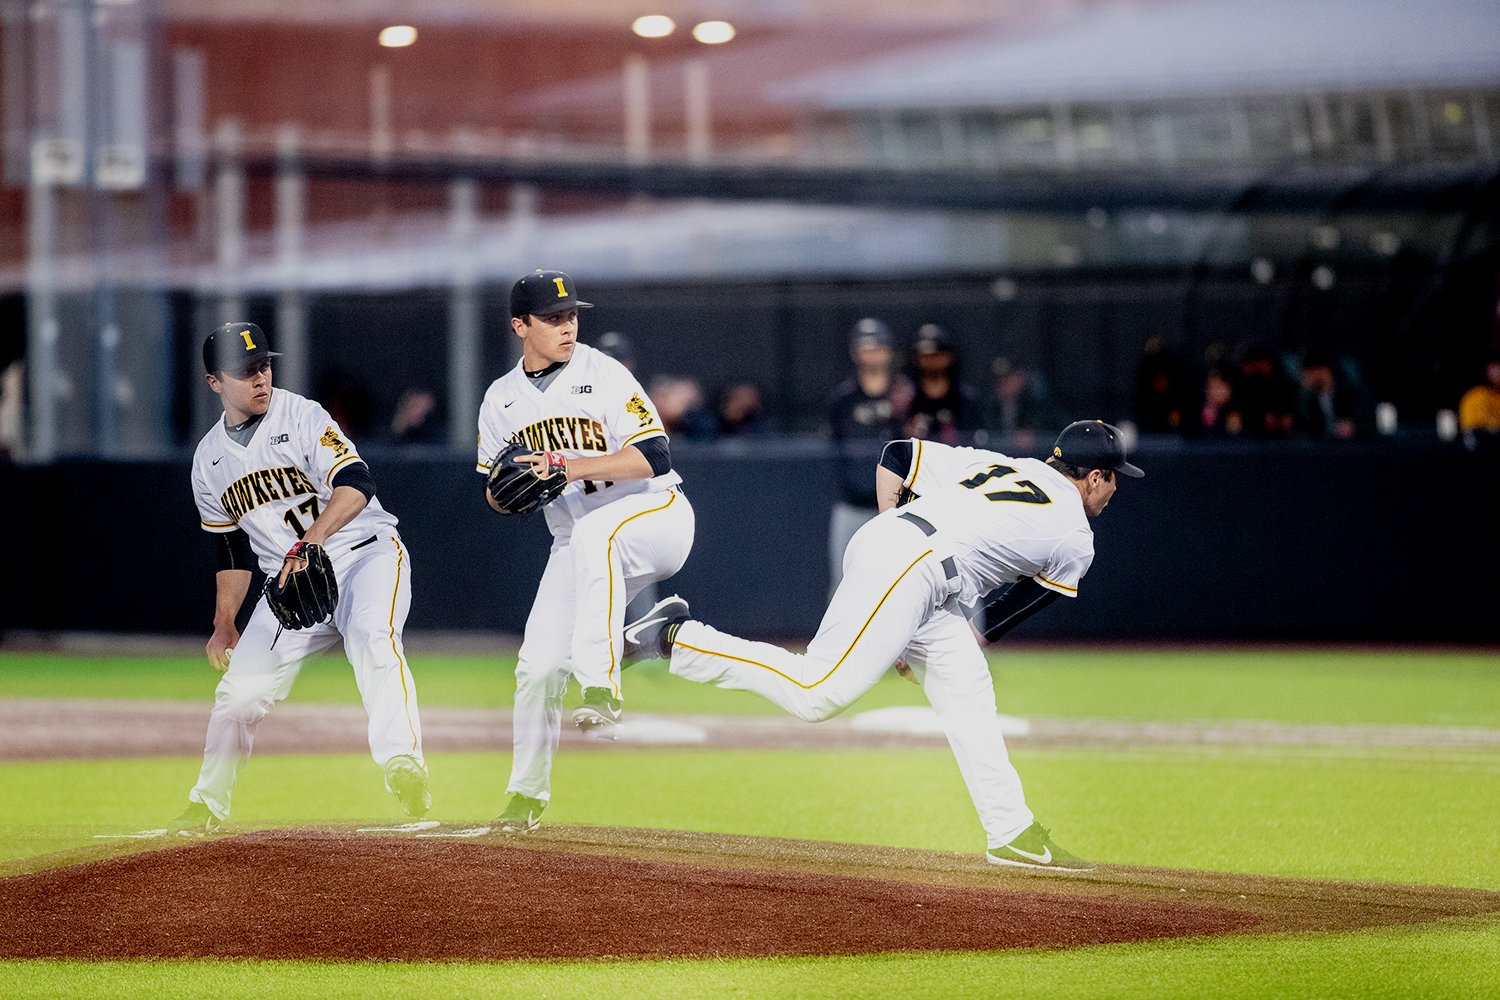 In+this+multiple+exposure%2C+Iowa+pitcher+Clayten+Nettleton+throws+a+pitch+during+the+baseball+game+against+Milwaukee+at+Duane+Banks+Field+on+Tuesday%2C+April+23%2C+2019.+The+Hawkeyes+defeated+the+Panthers+5-4.